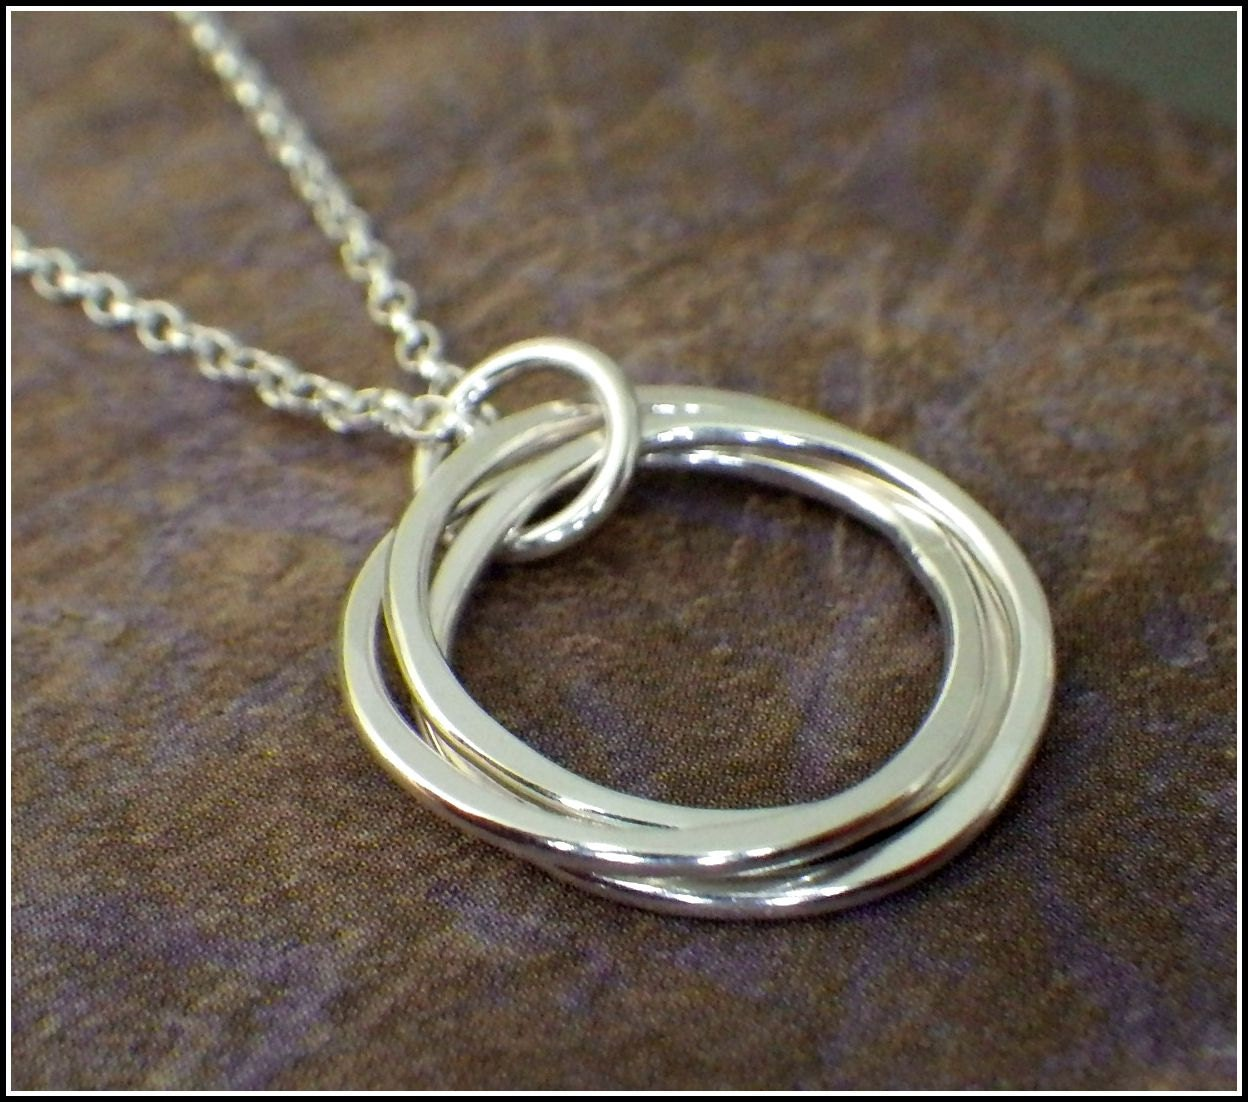 3 rings necklace interlocking rings 30th birthday necklace